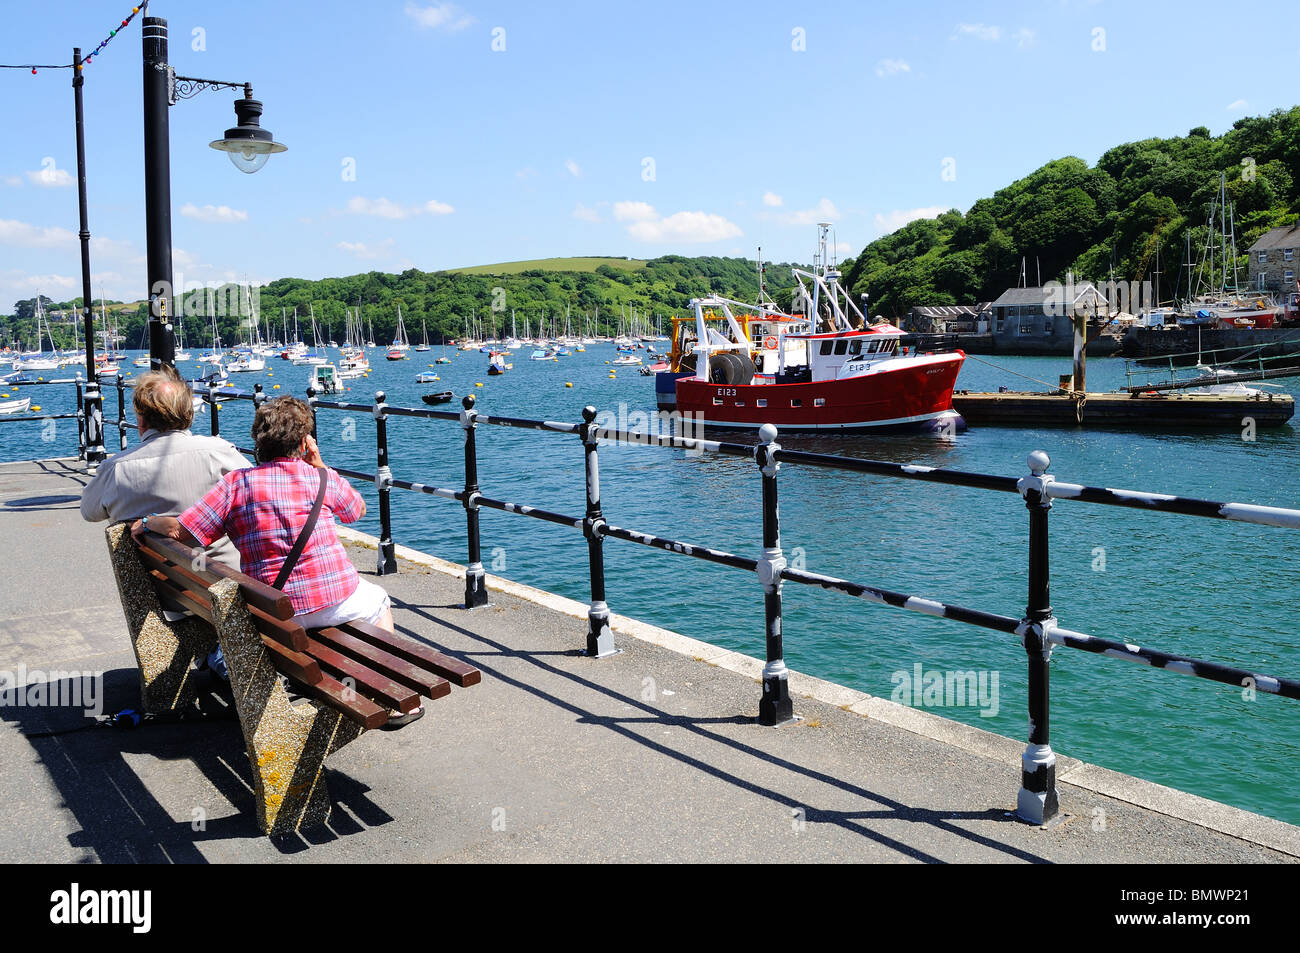 tourists relaxing on the quay at polruan in cornwall, uk - Stock Image